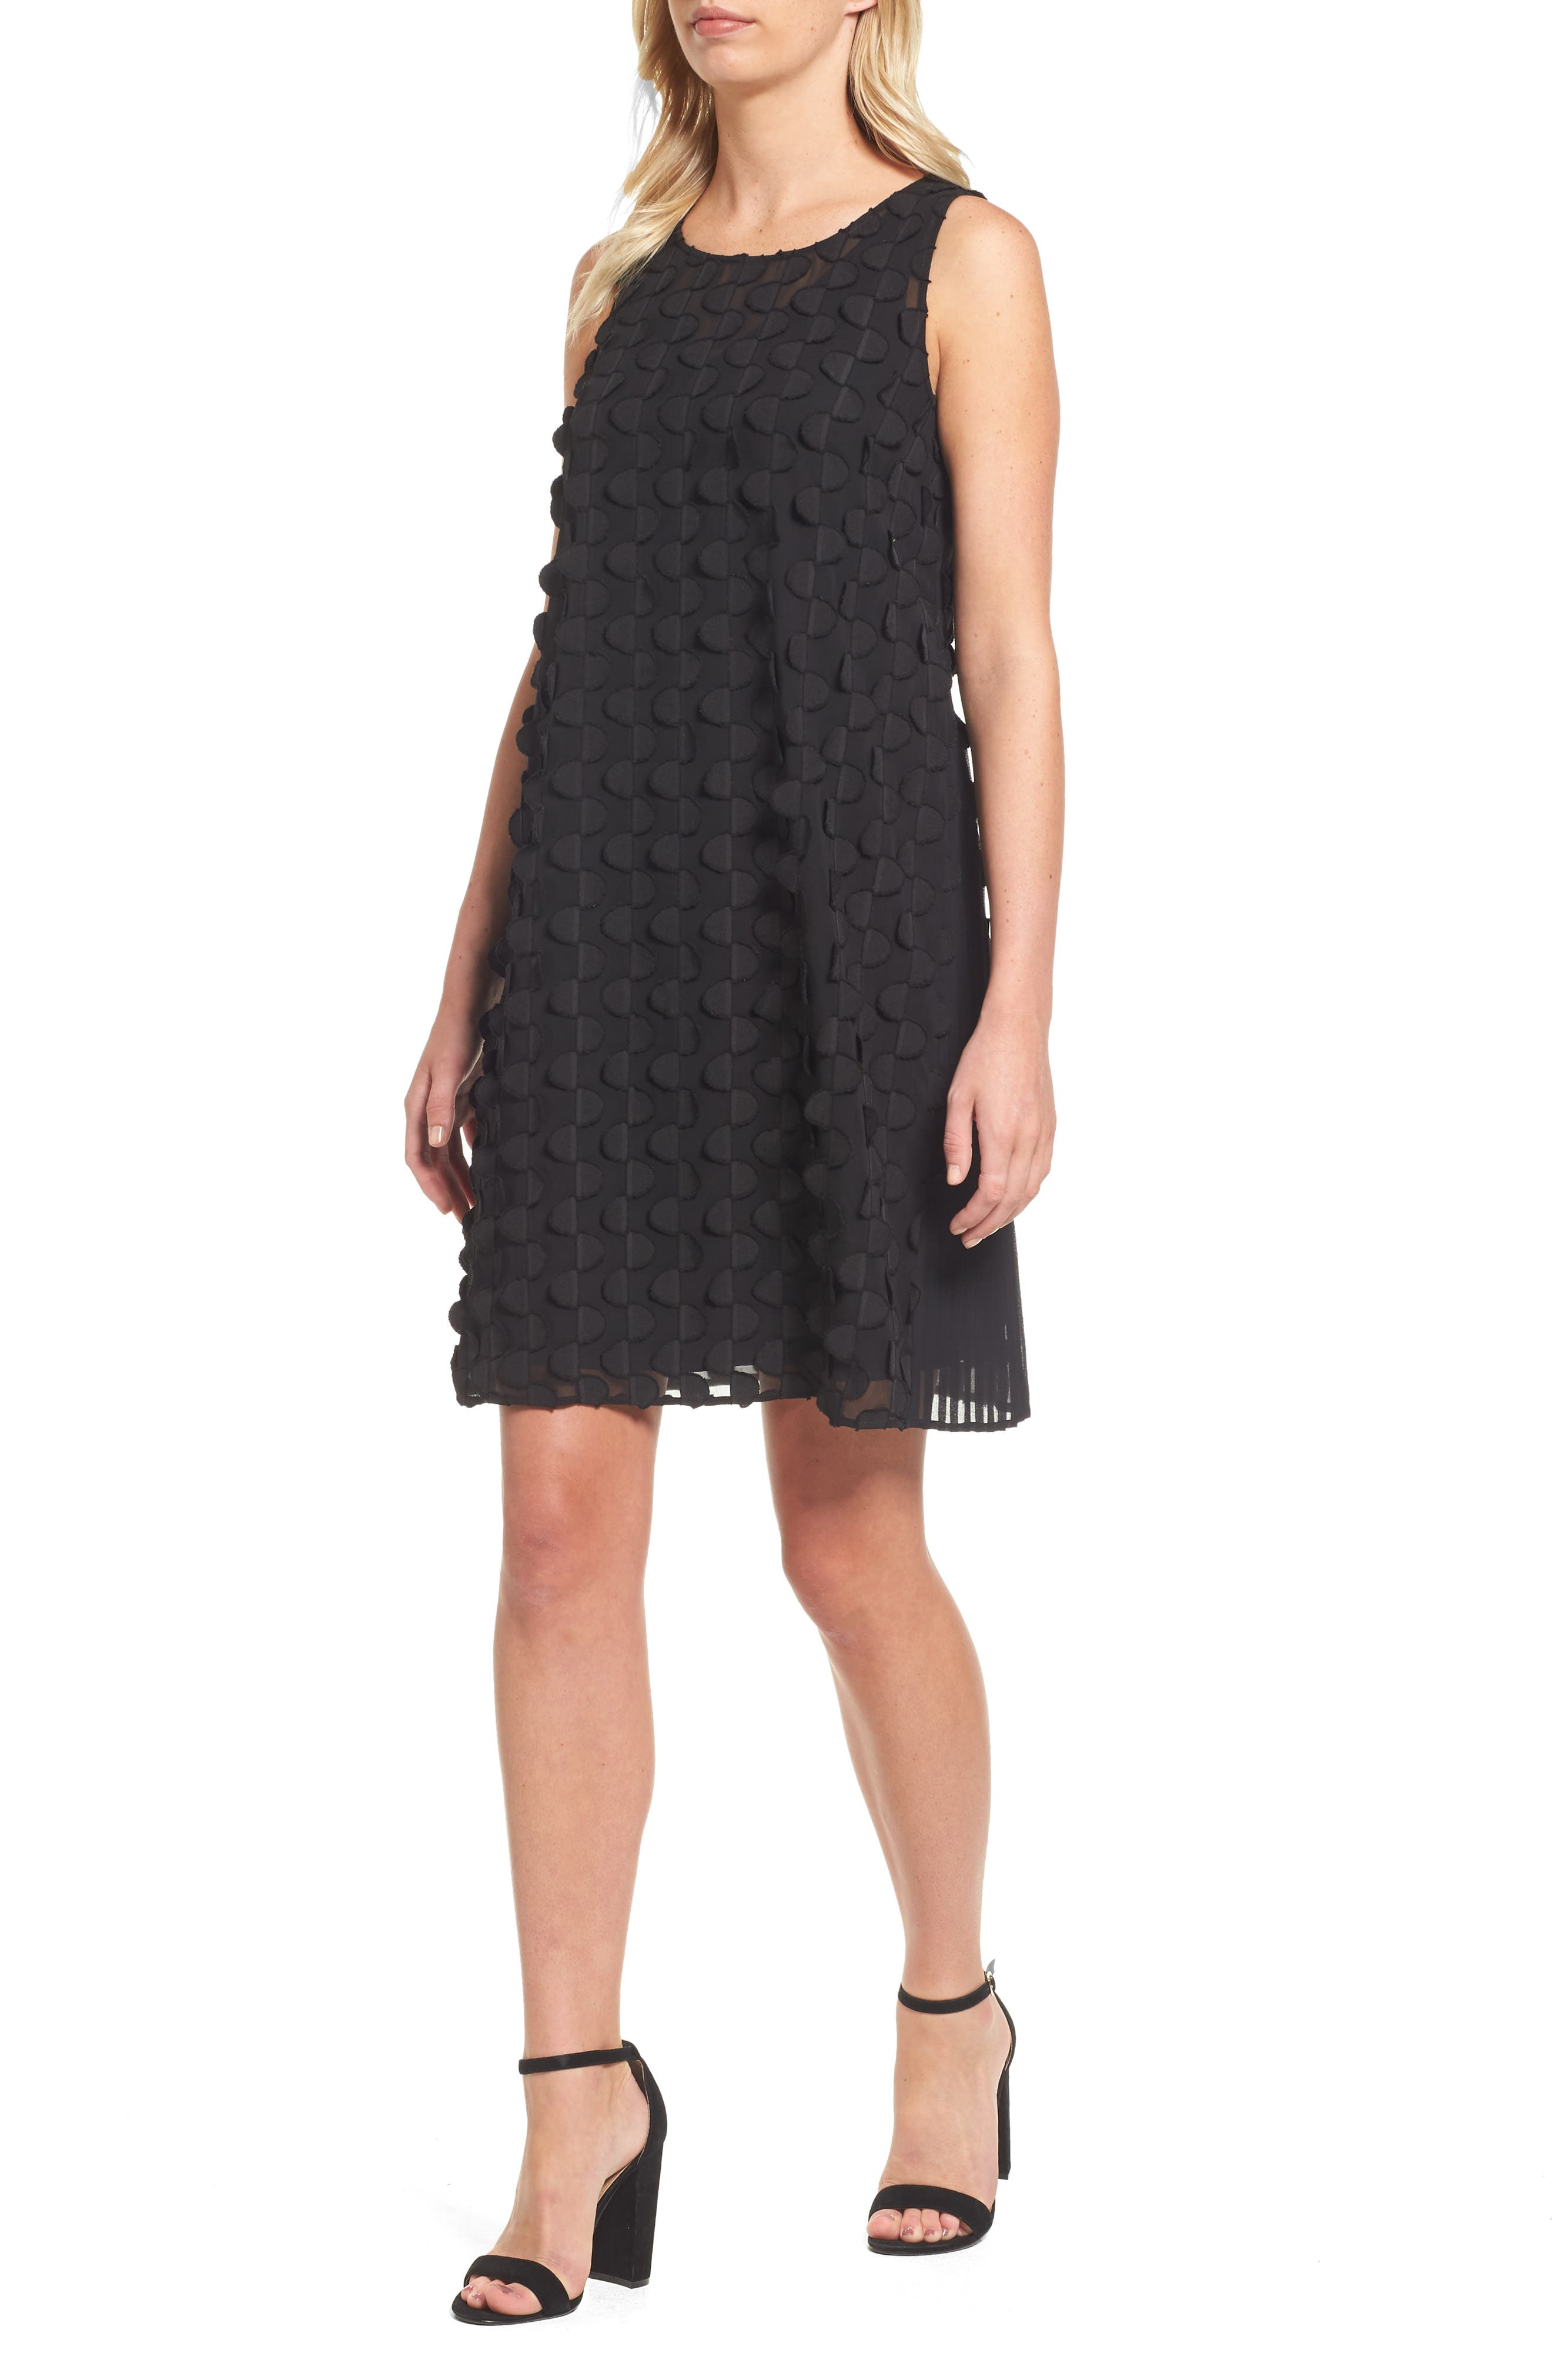 Nic + Zoe Showtime Shift Dress,                             Main thumbnail 1, color,                             004